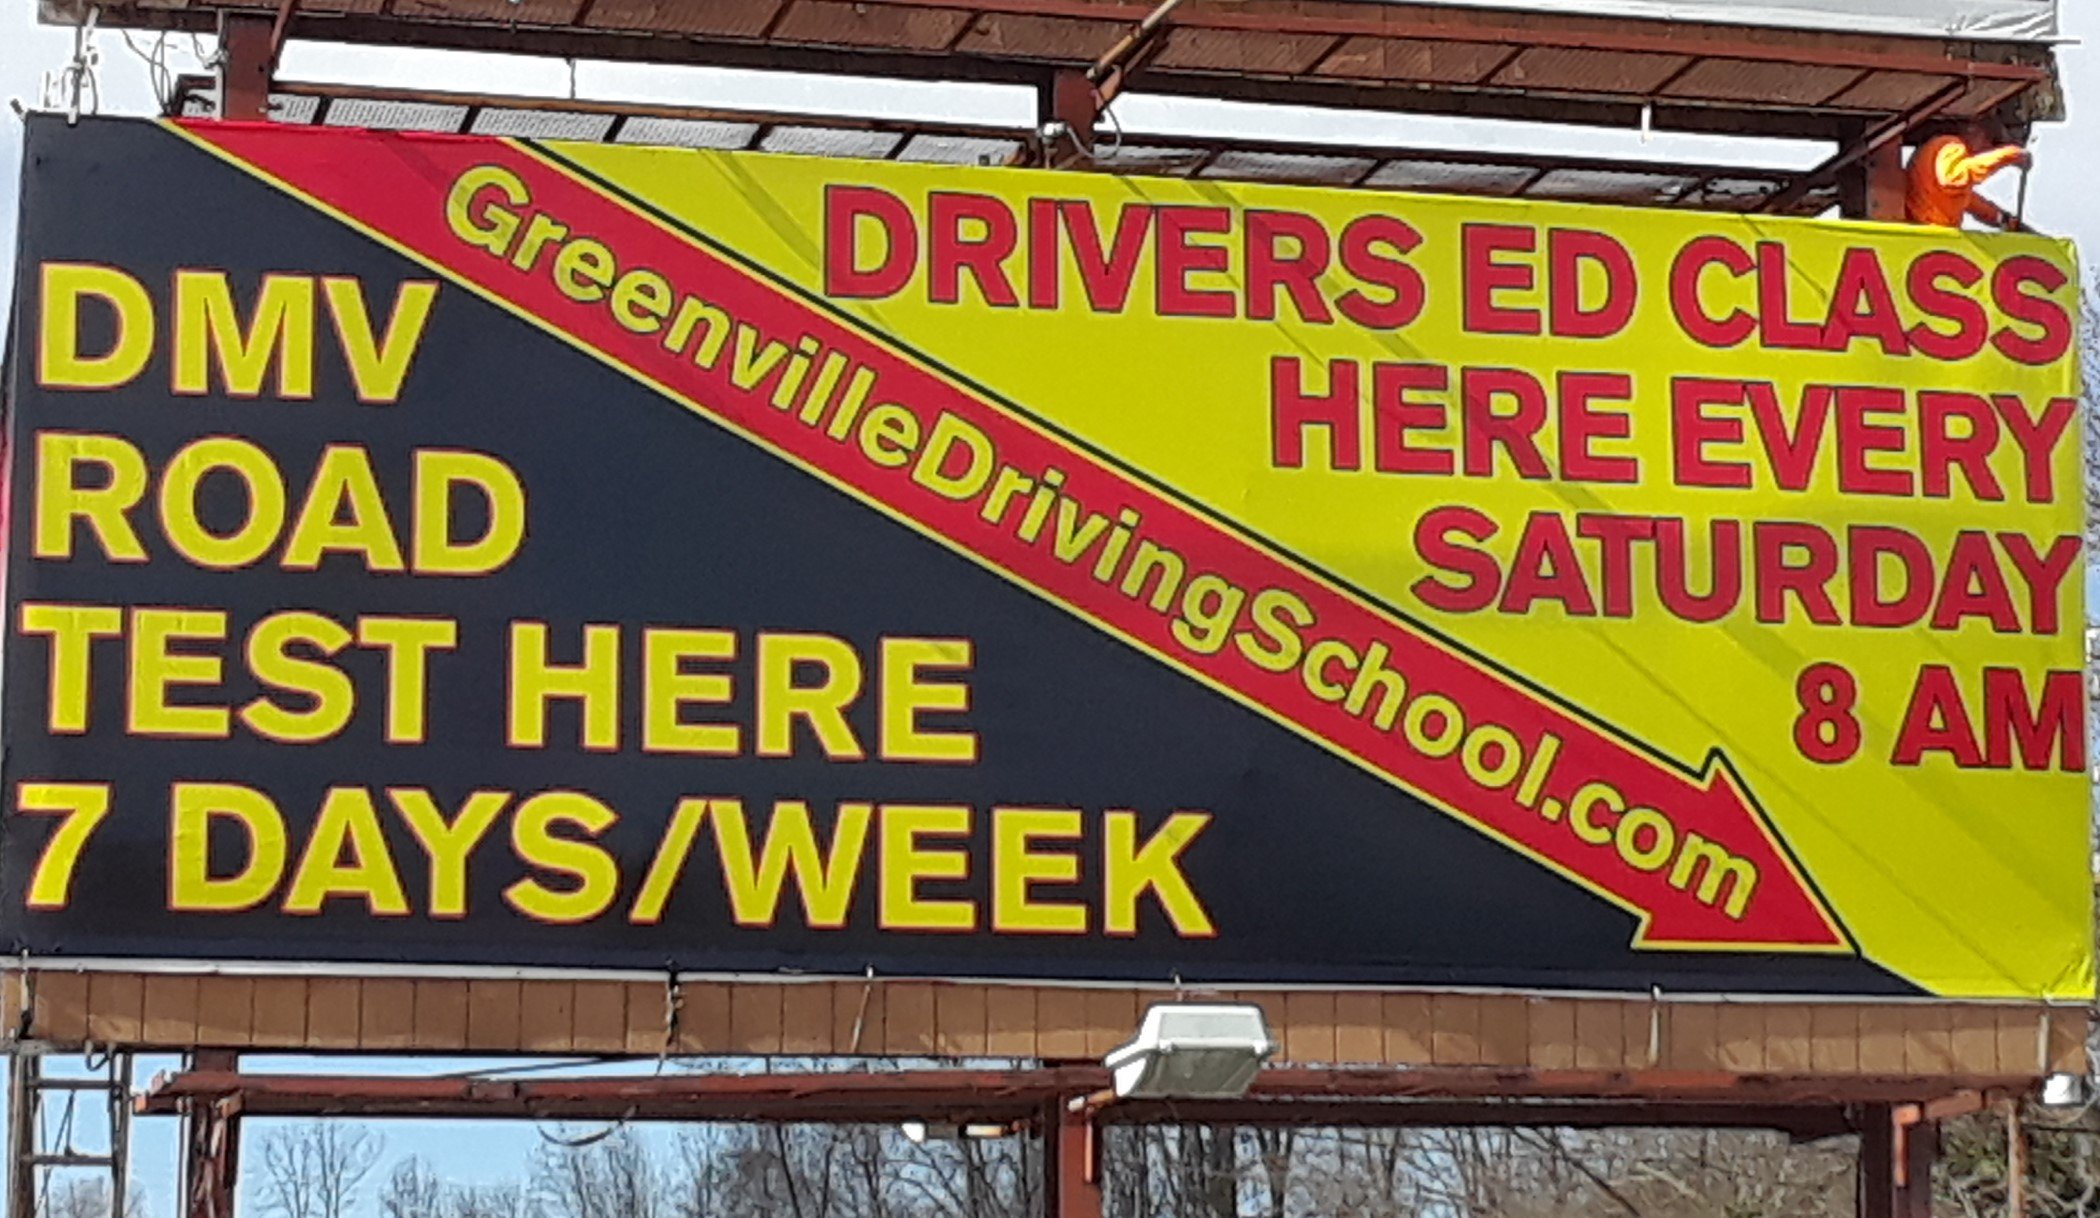 Driver Education And Dmv Road Testing In Lyman Duncan  Greer Sc With Drivers Ed Signs Worksheet